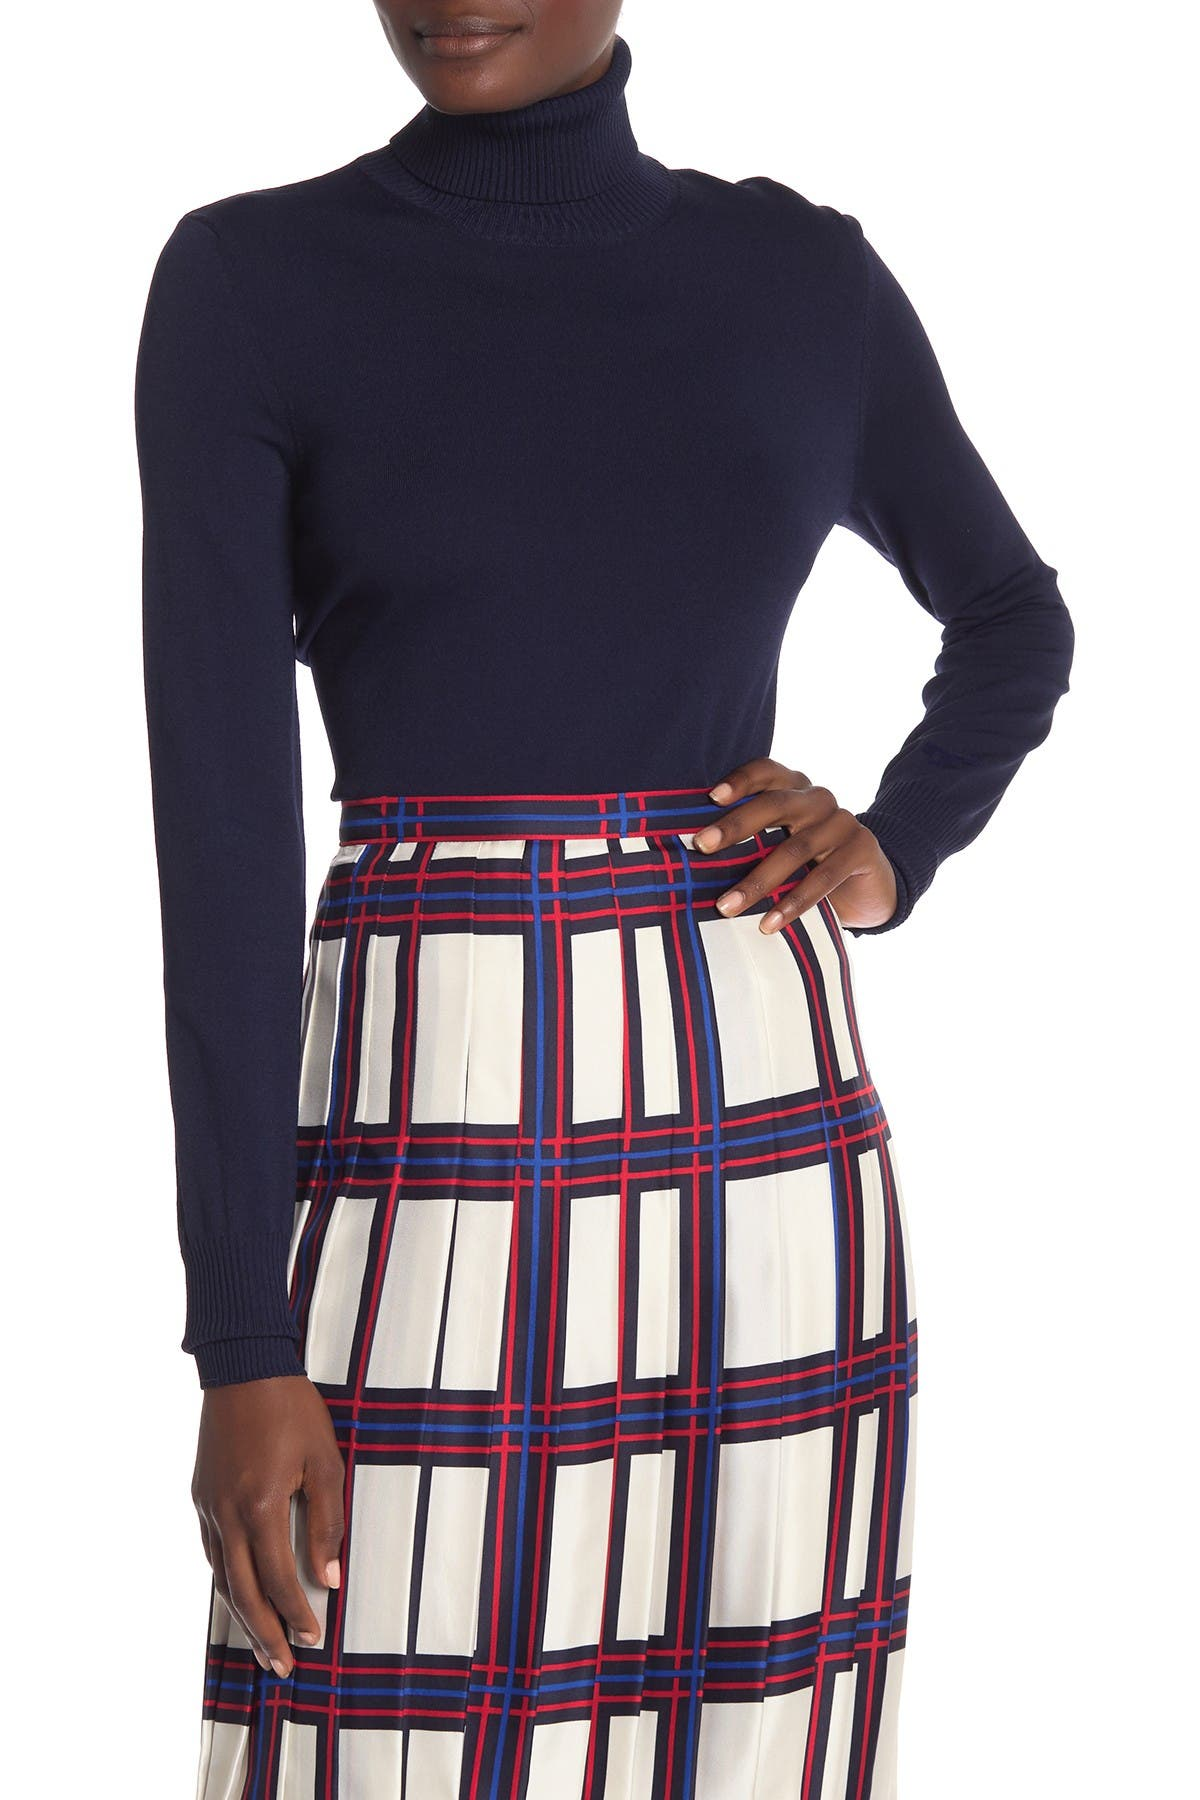 Image of Tory Burch Candace Turtleneck